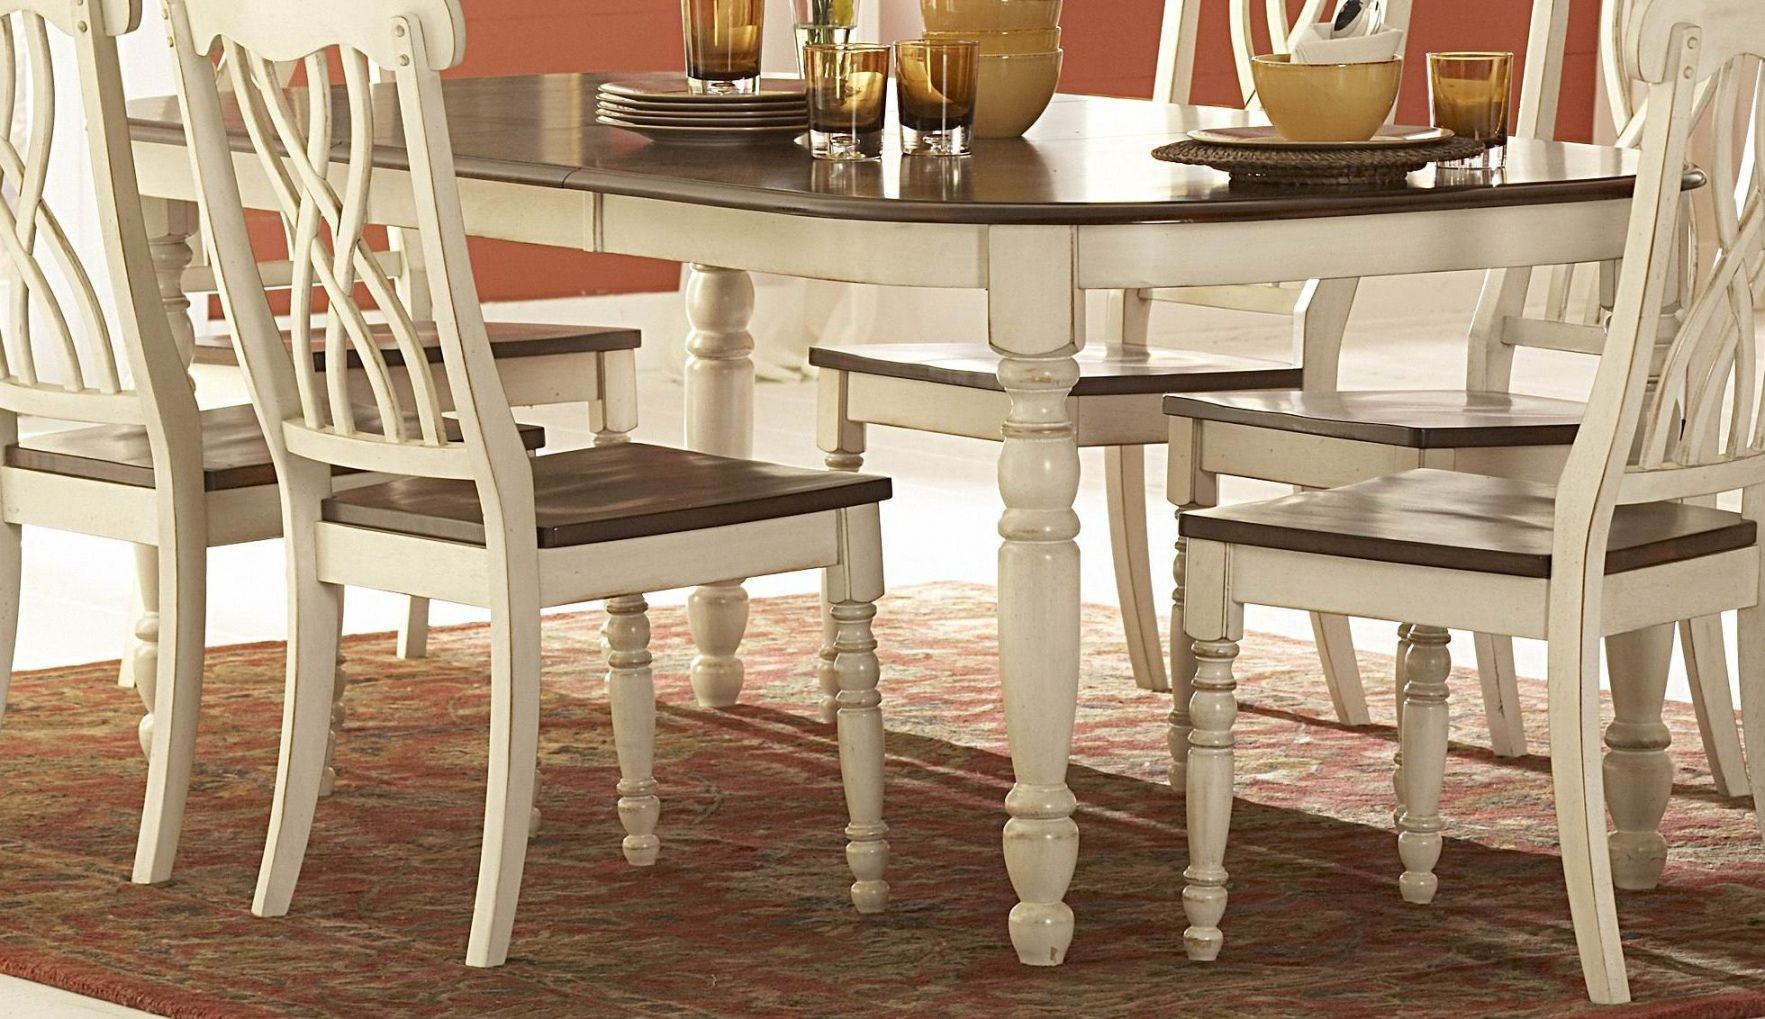 20 Distressed Leather Dining Room Chairs